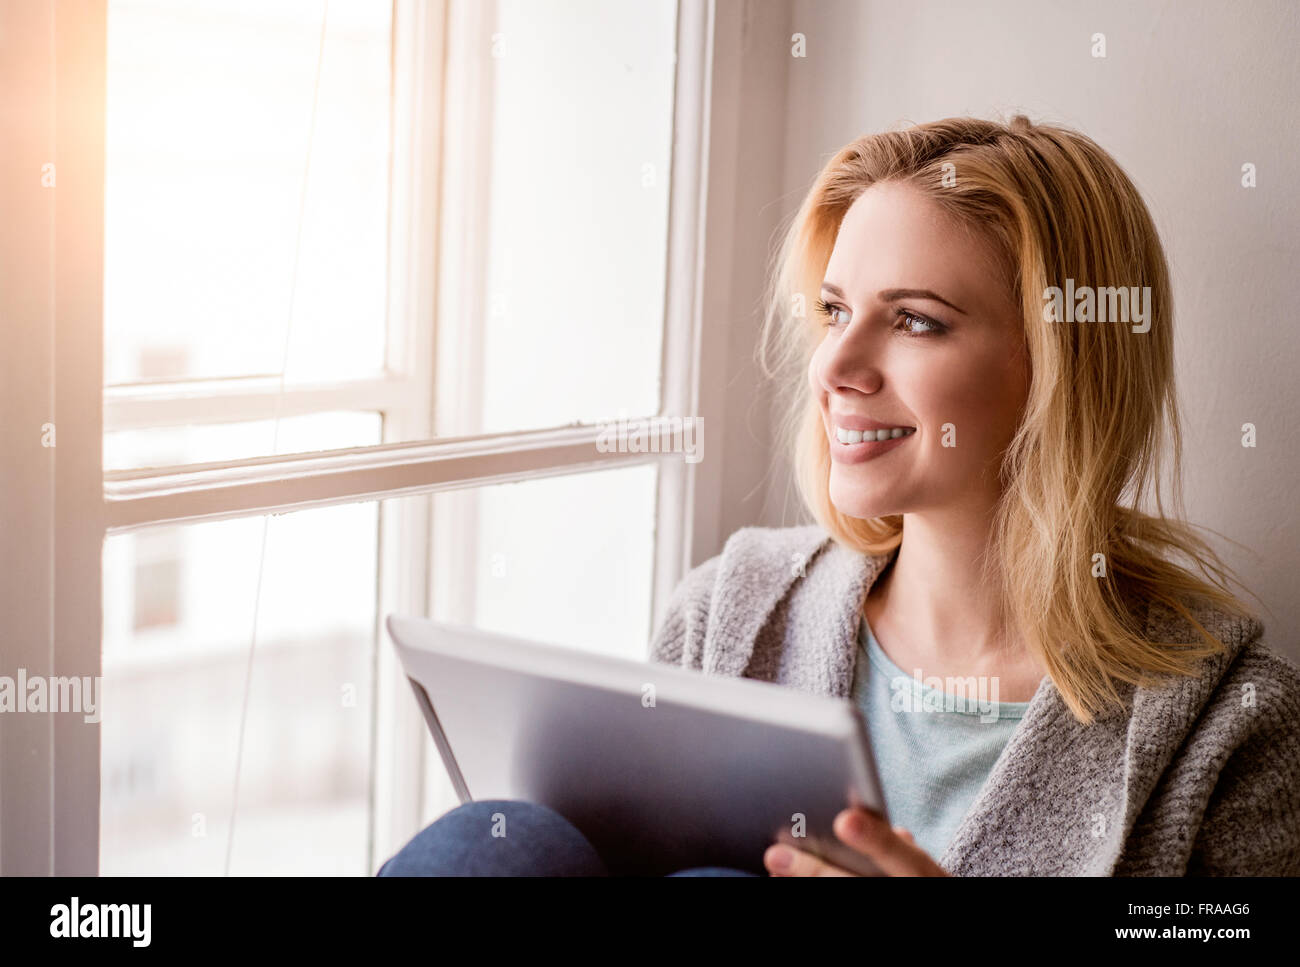 Woman with tablet sitting on window sill, sunny day - Stock Image